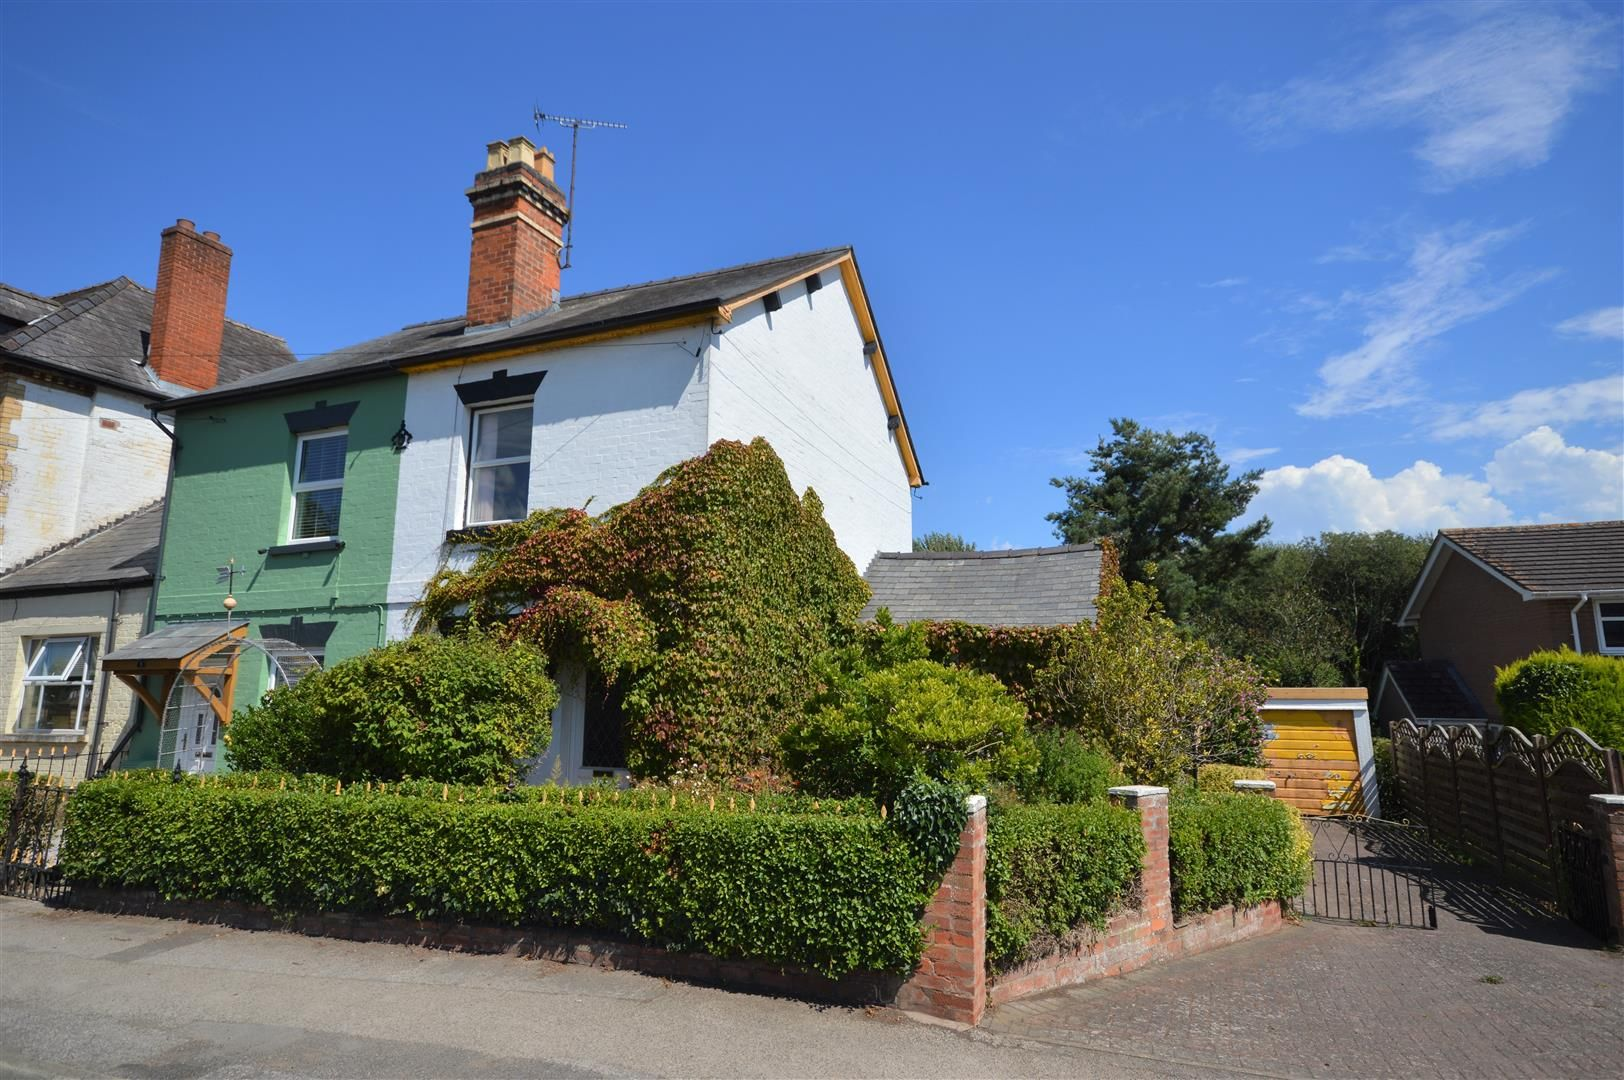 2 bed semi-detached for sale in Leominster, HR6